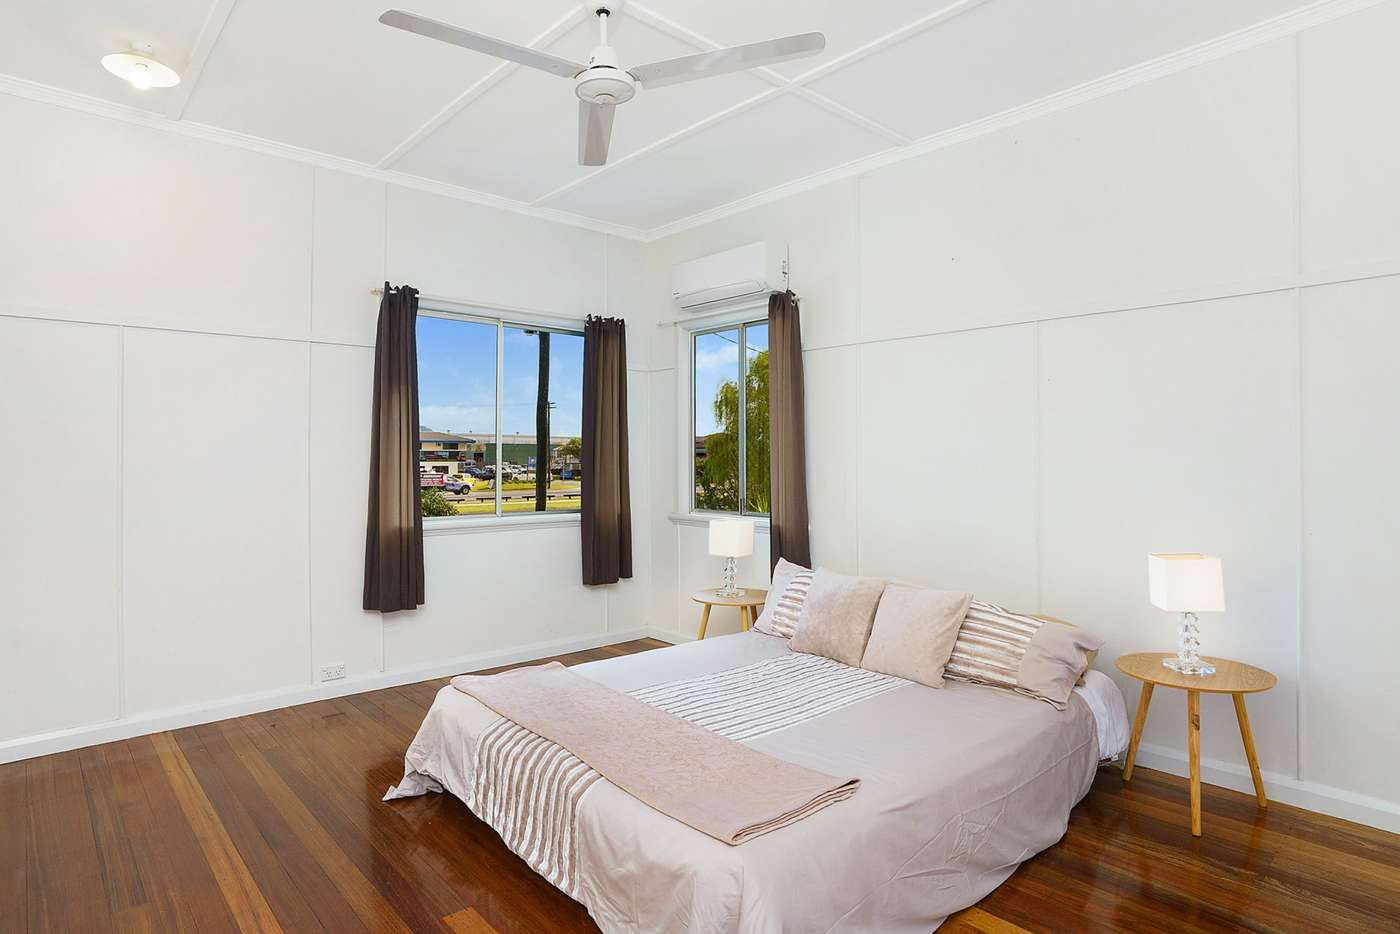 Sixth view of Homely house listing, 273 Spence Street, Bungalow QLD 4870